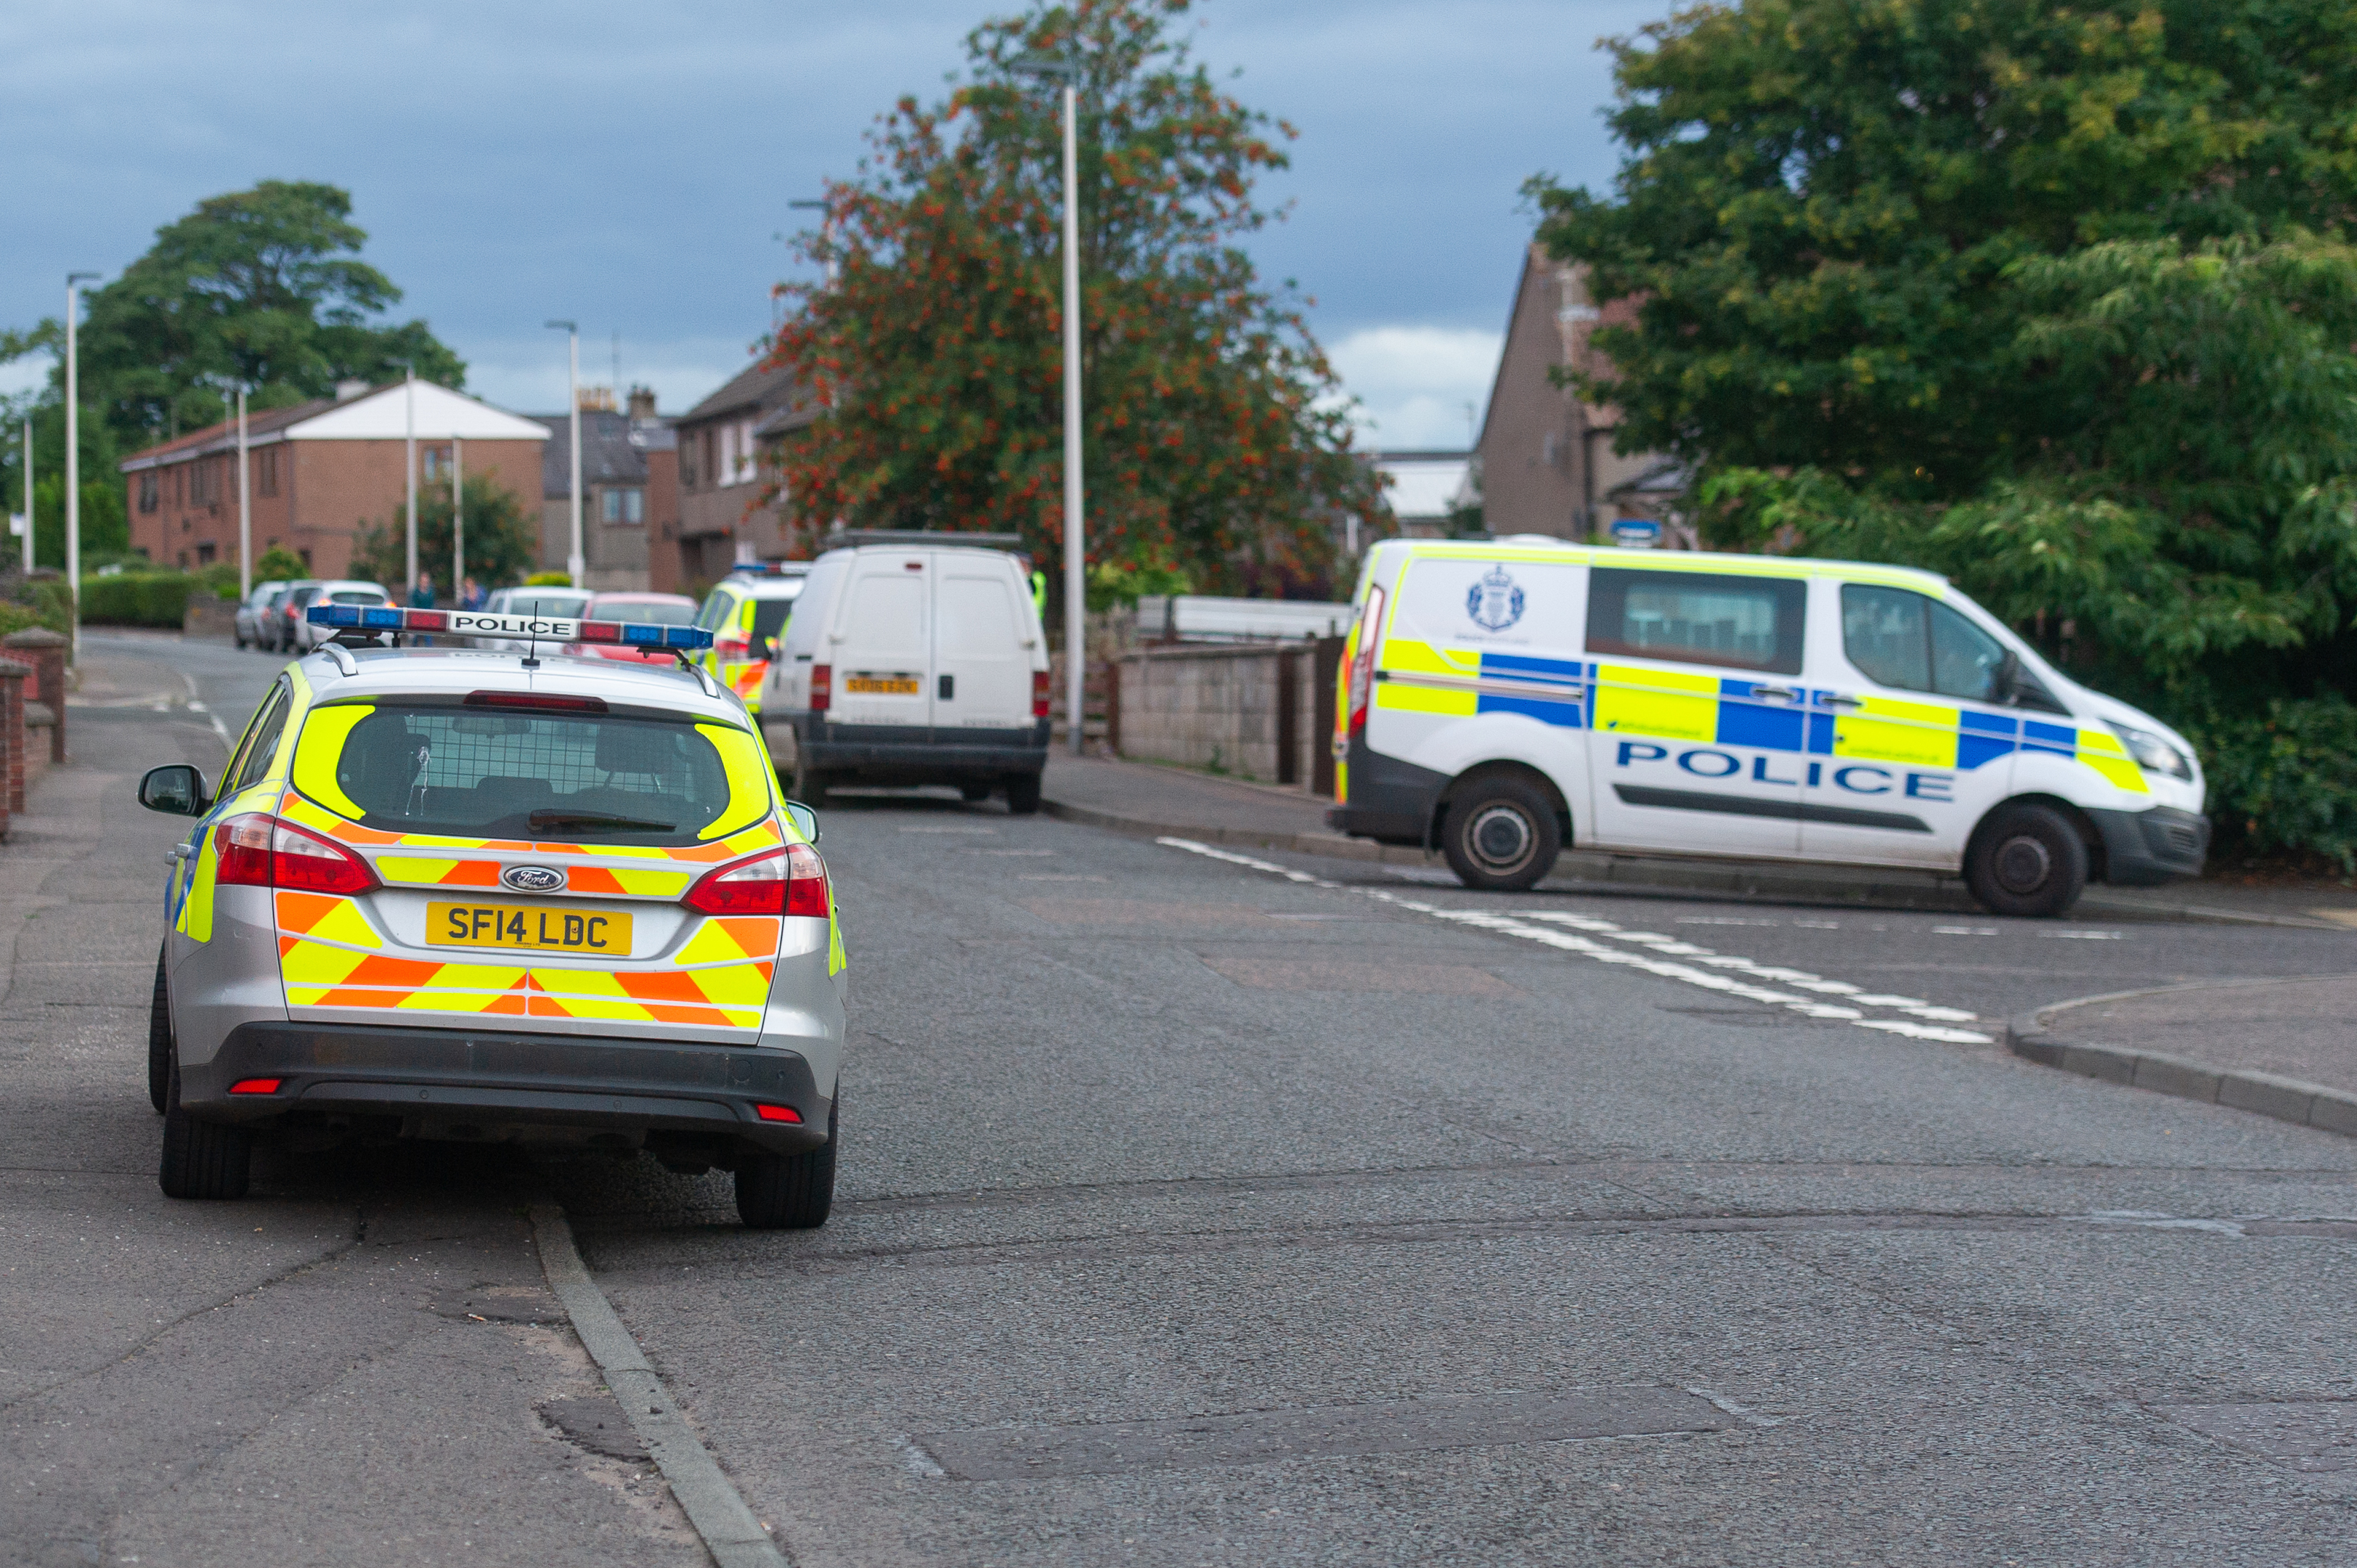 The Forfar incident prompted a major police response.